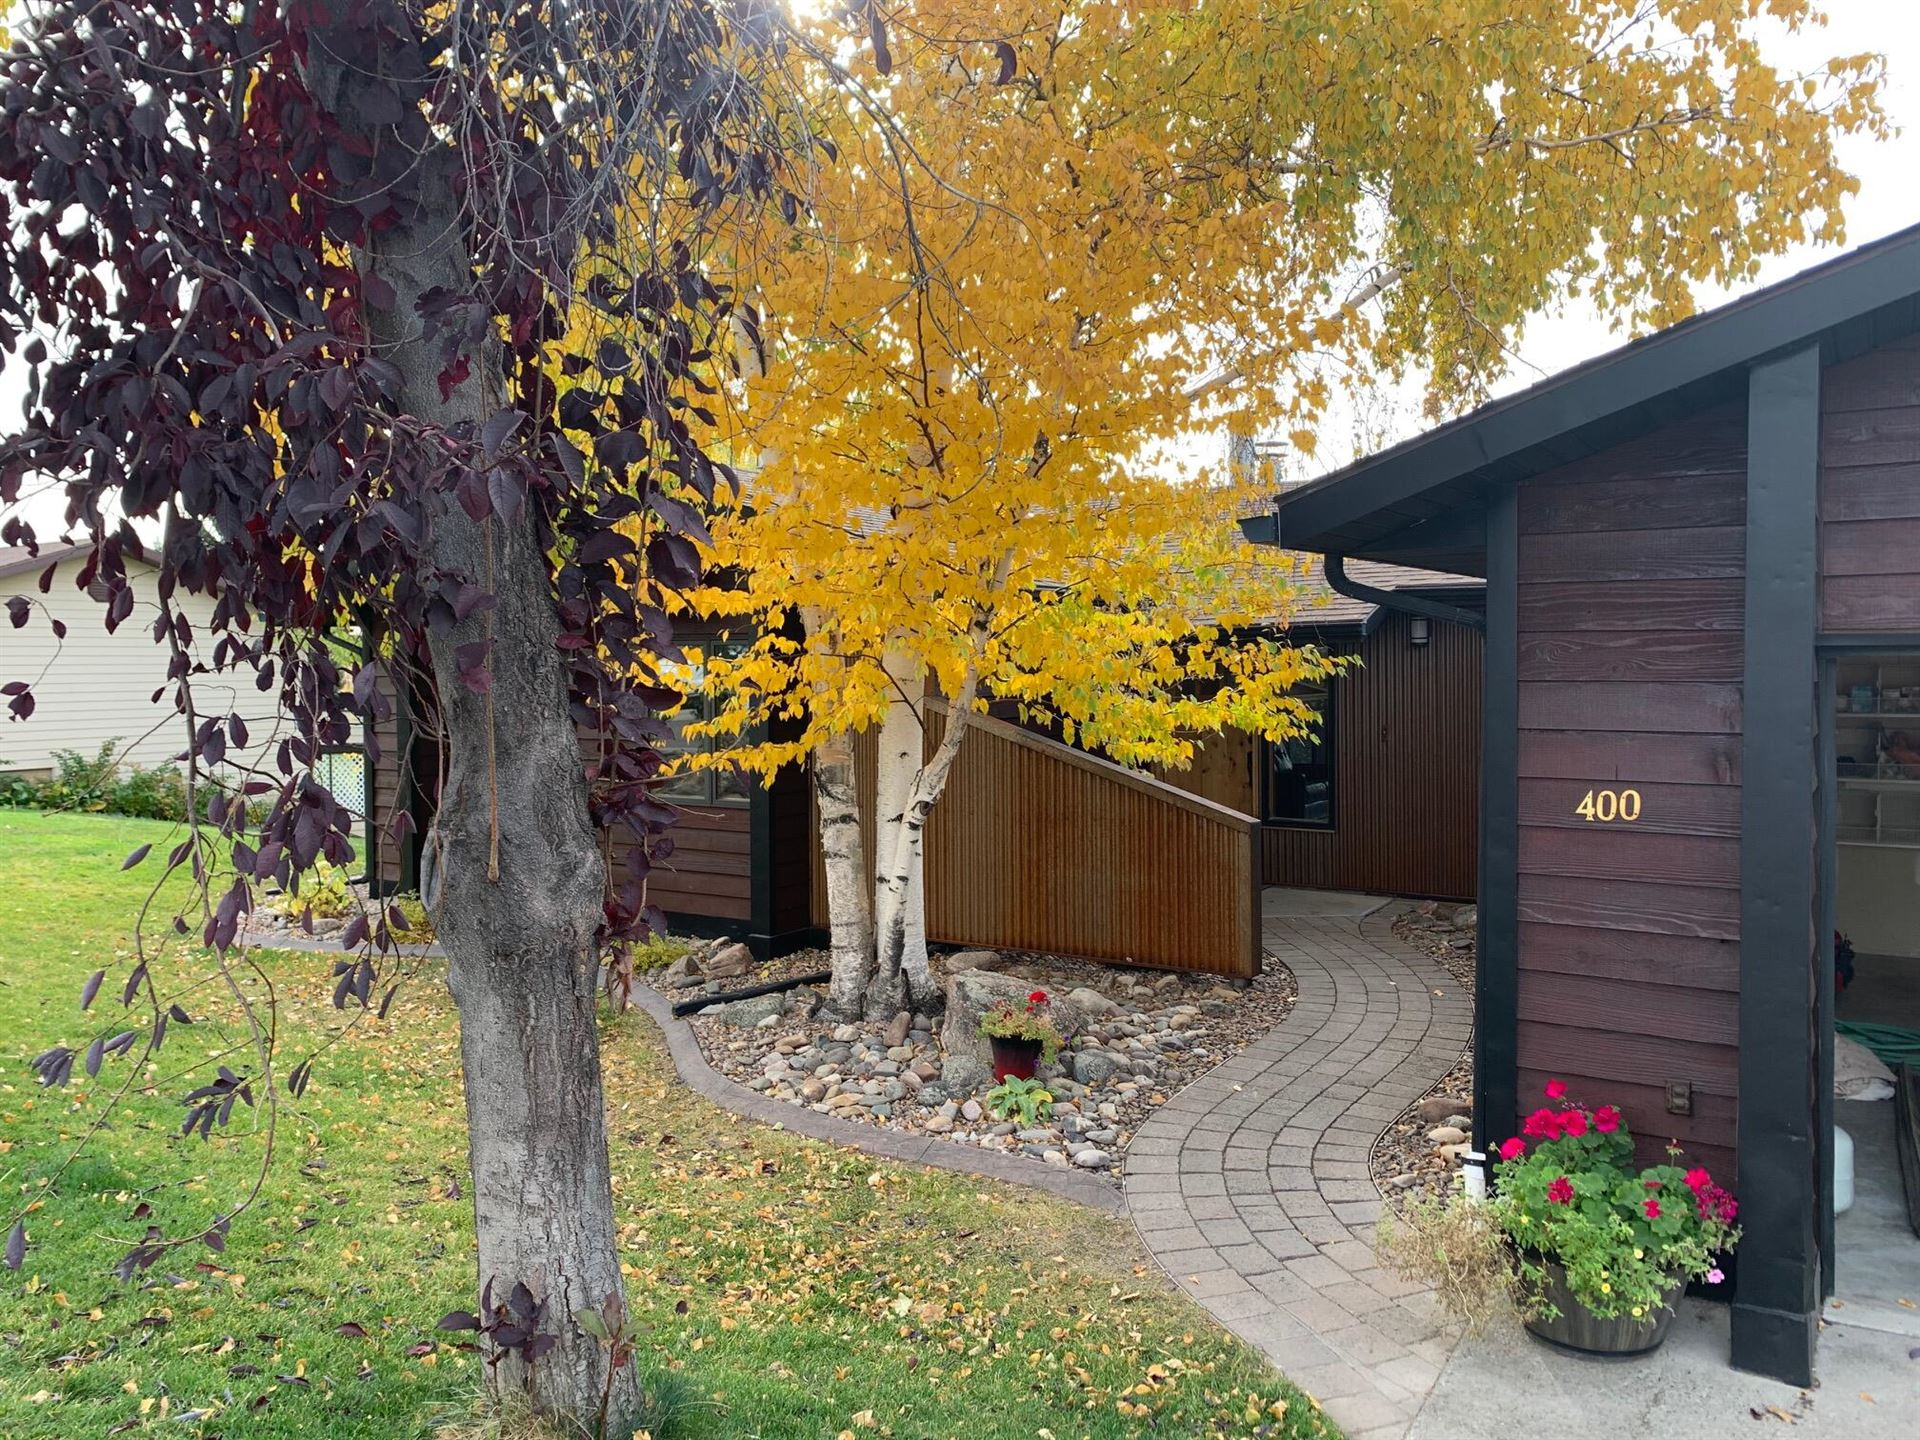 Photo of 400 20th Avenue South, Great Falls, MT 59405 (MLS # 22116433)